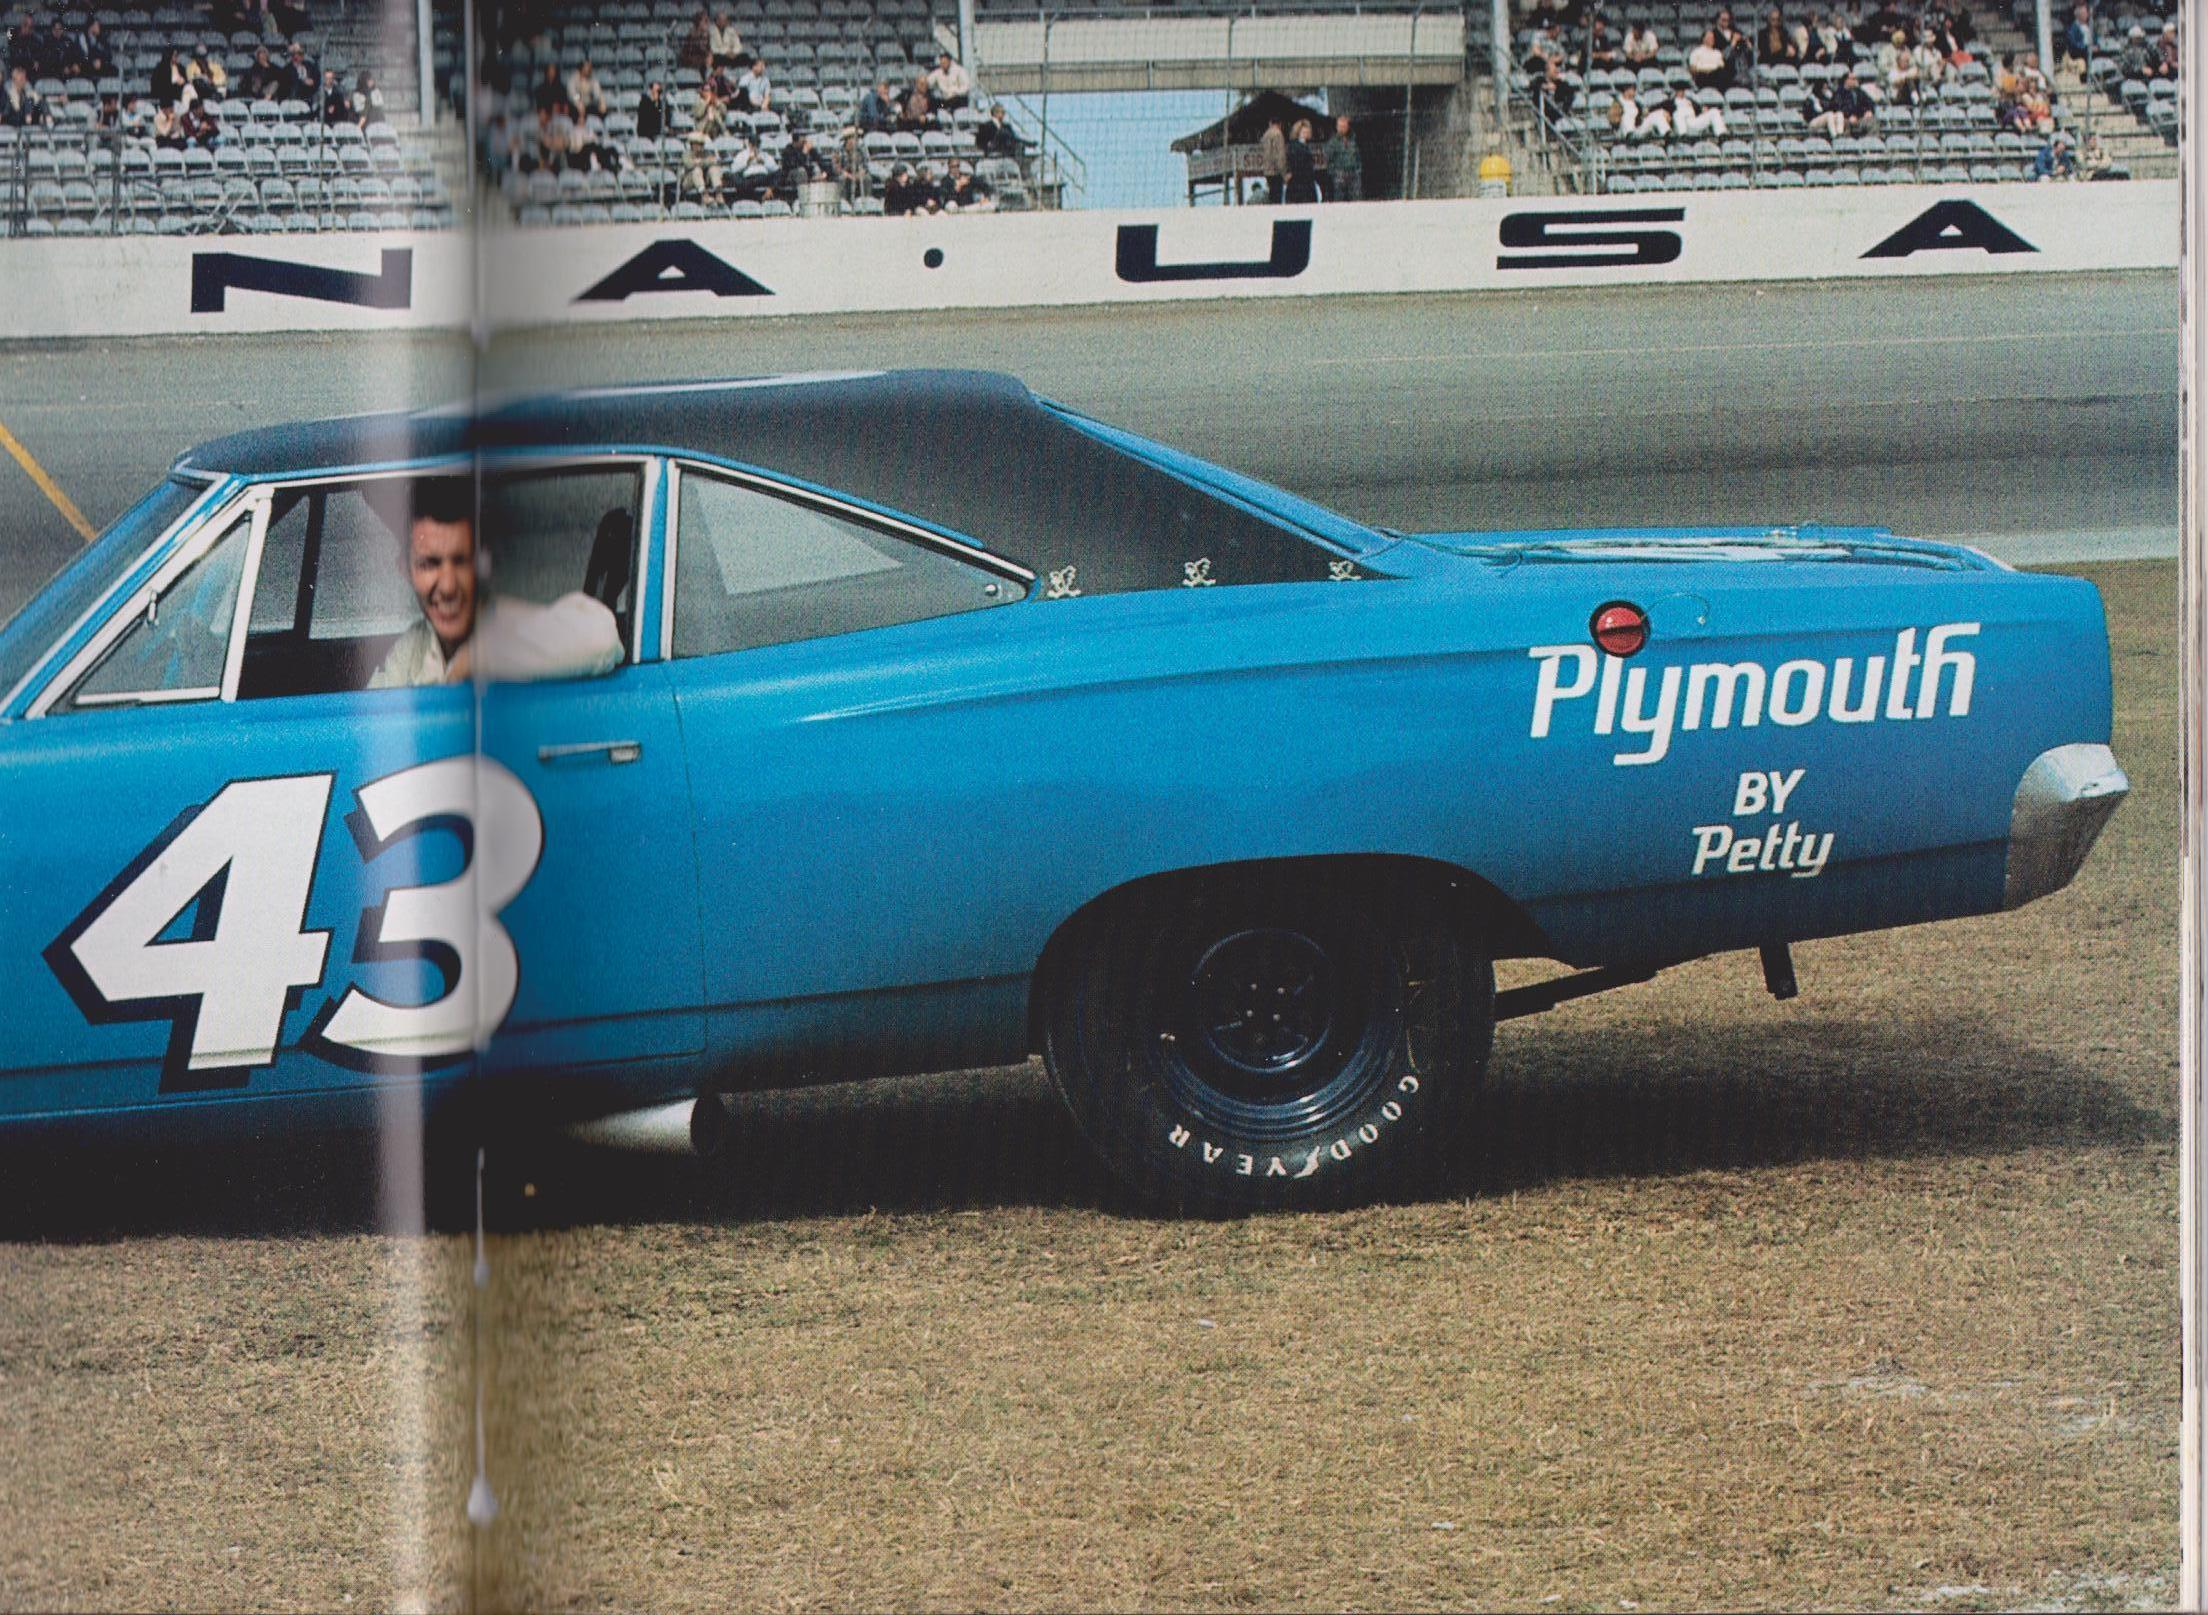 1968 Petty Plymouth But Where And With Whom